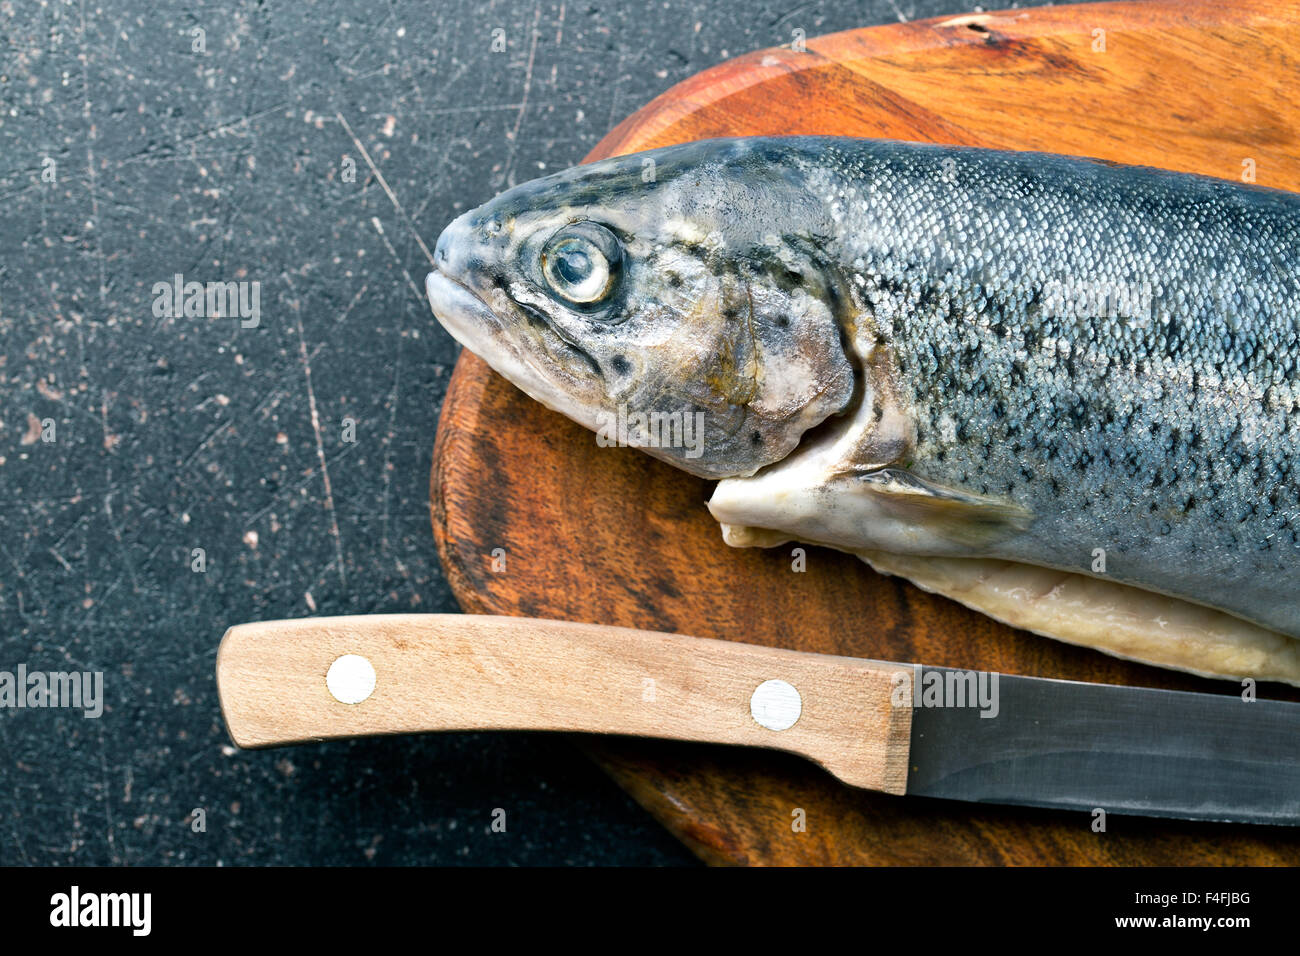 the gutted trout old kitchen table - Stock Image